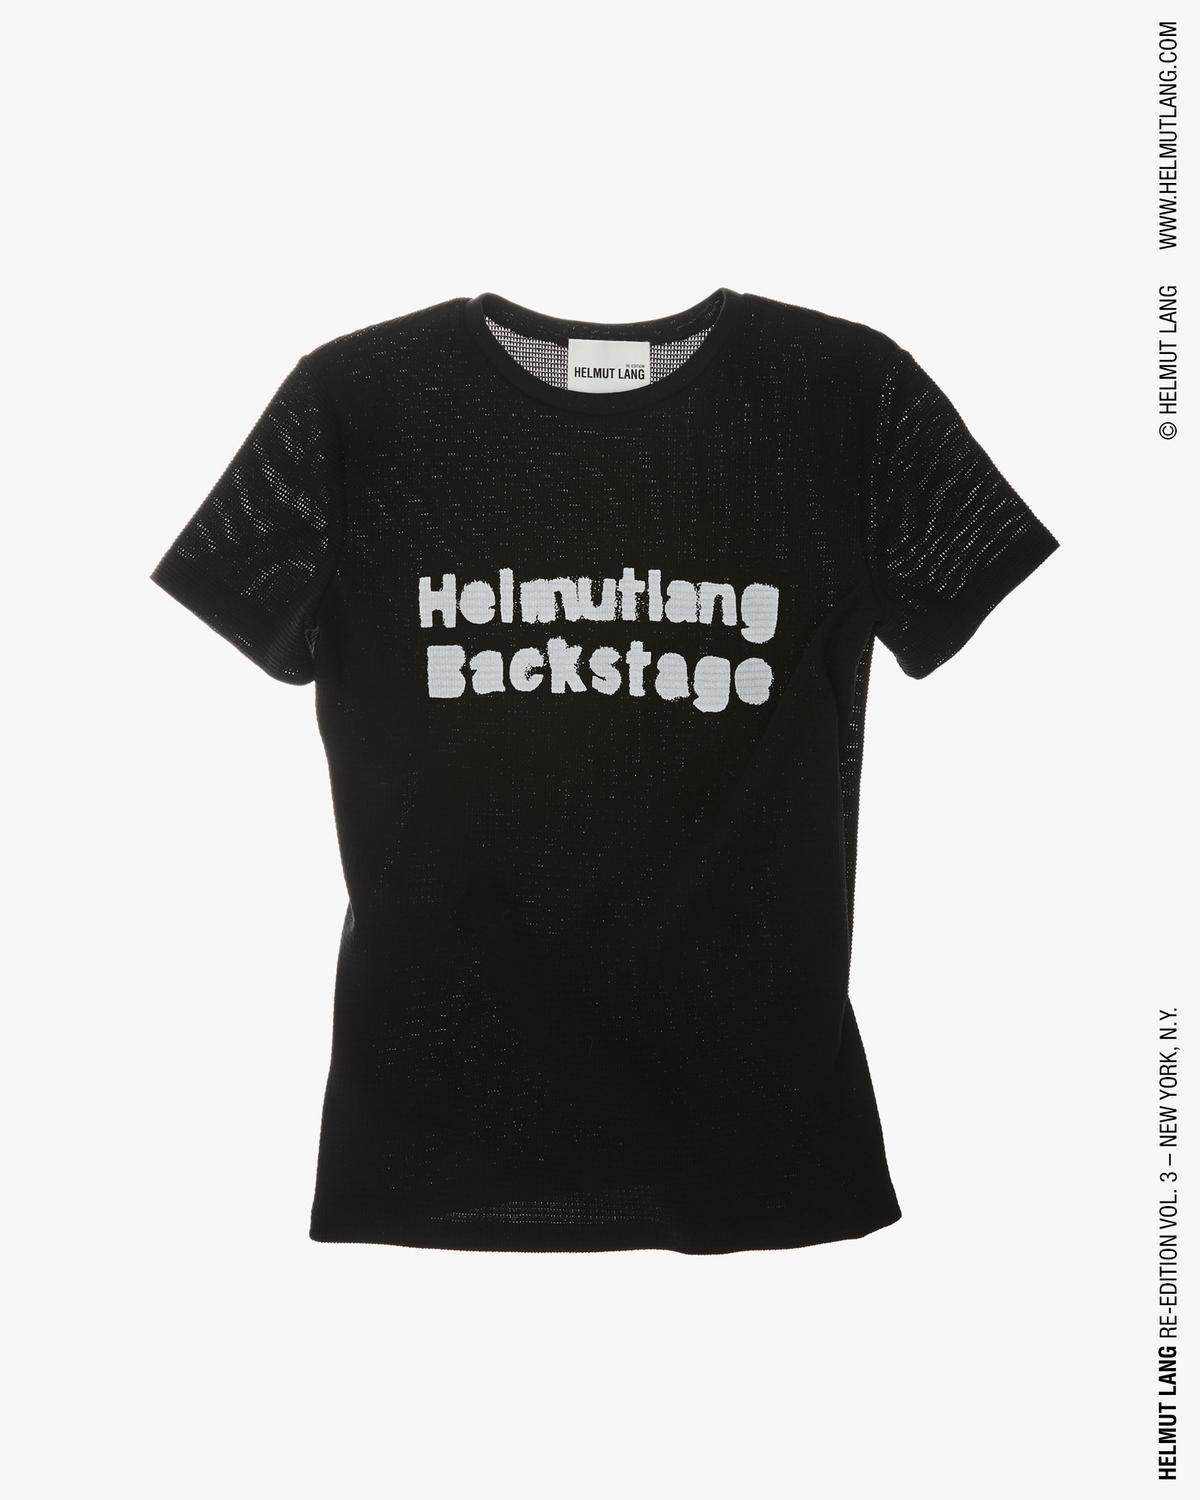 How To Print White Text On Black Shirt Bcd Tofu House